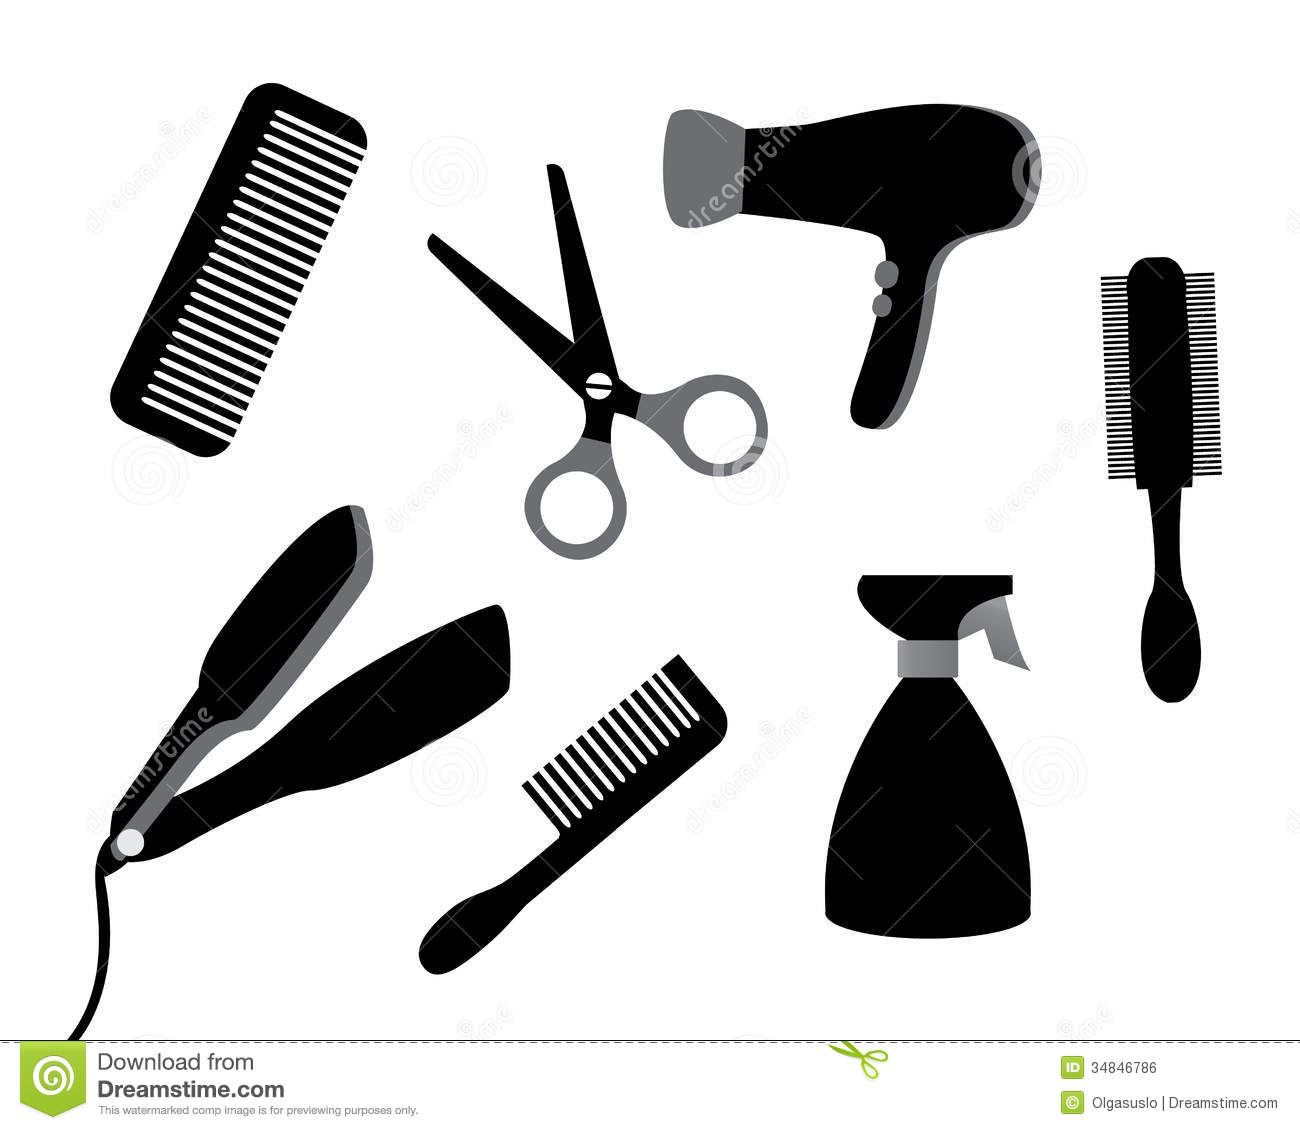 Hair Stylist - Free downloads and reviews - download.cnet.com